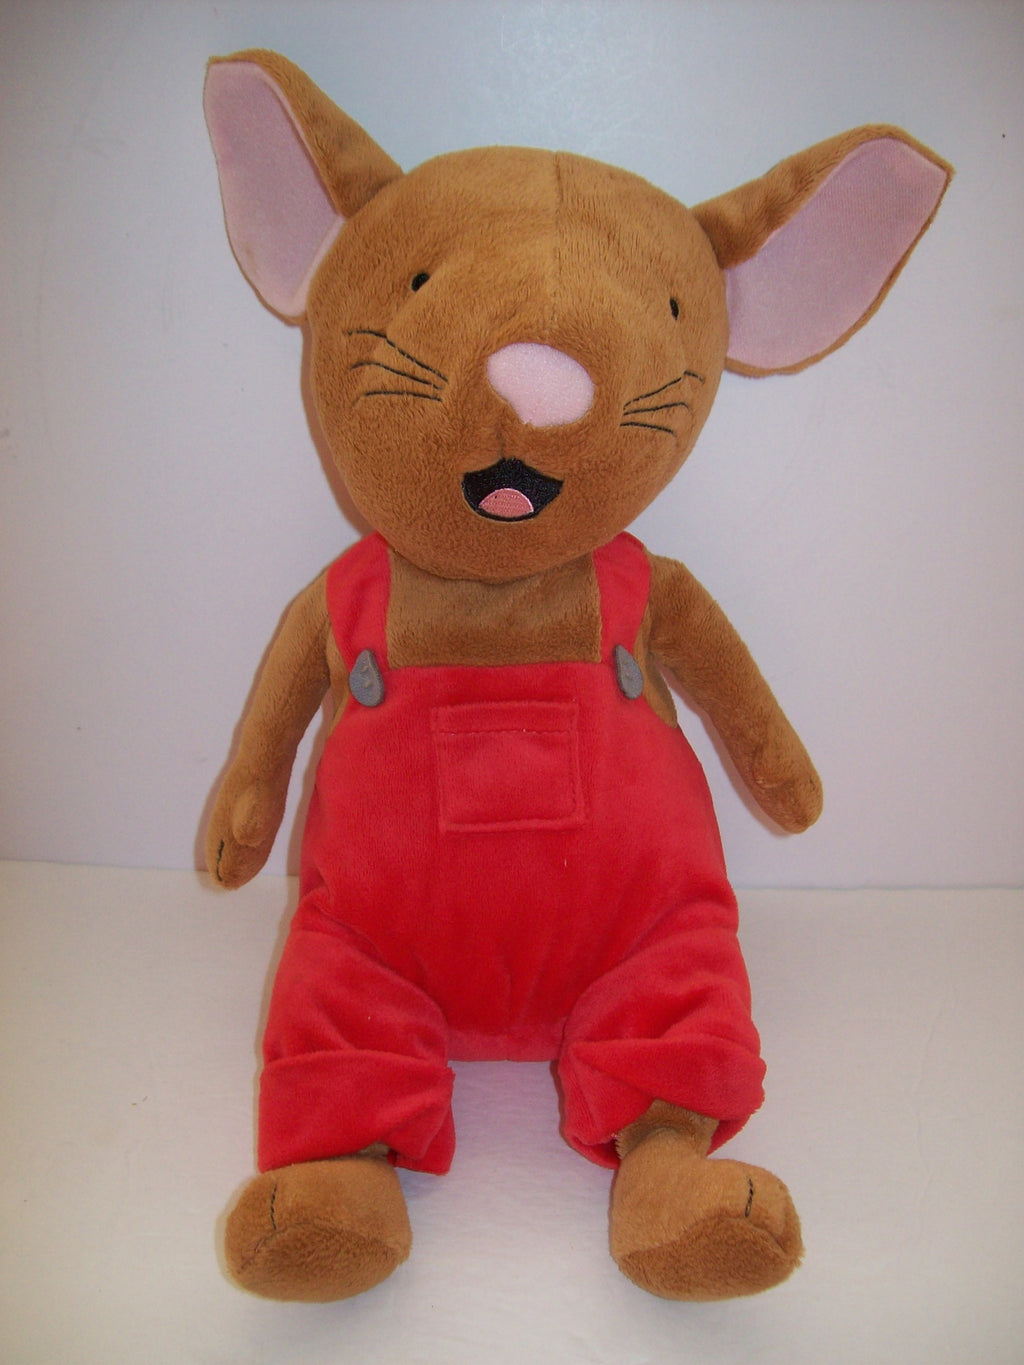 If You Give A Mouse A Cookie Kohls Cares Plush-We Got Character